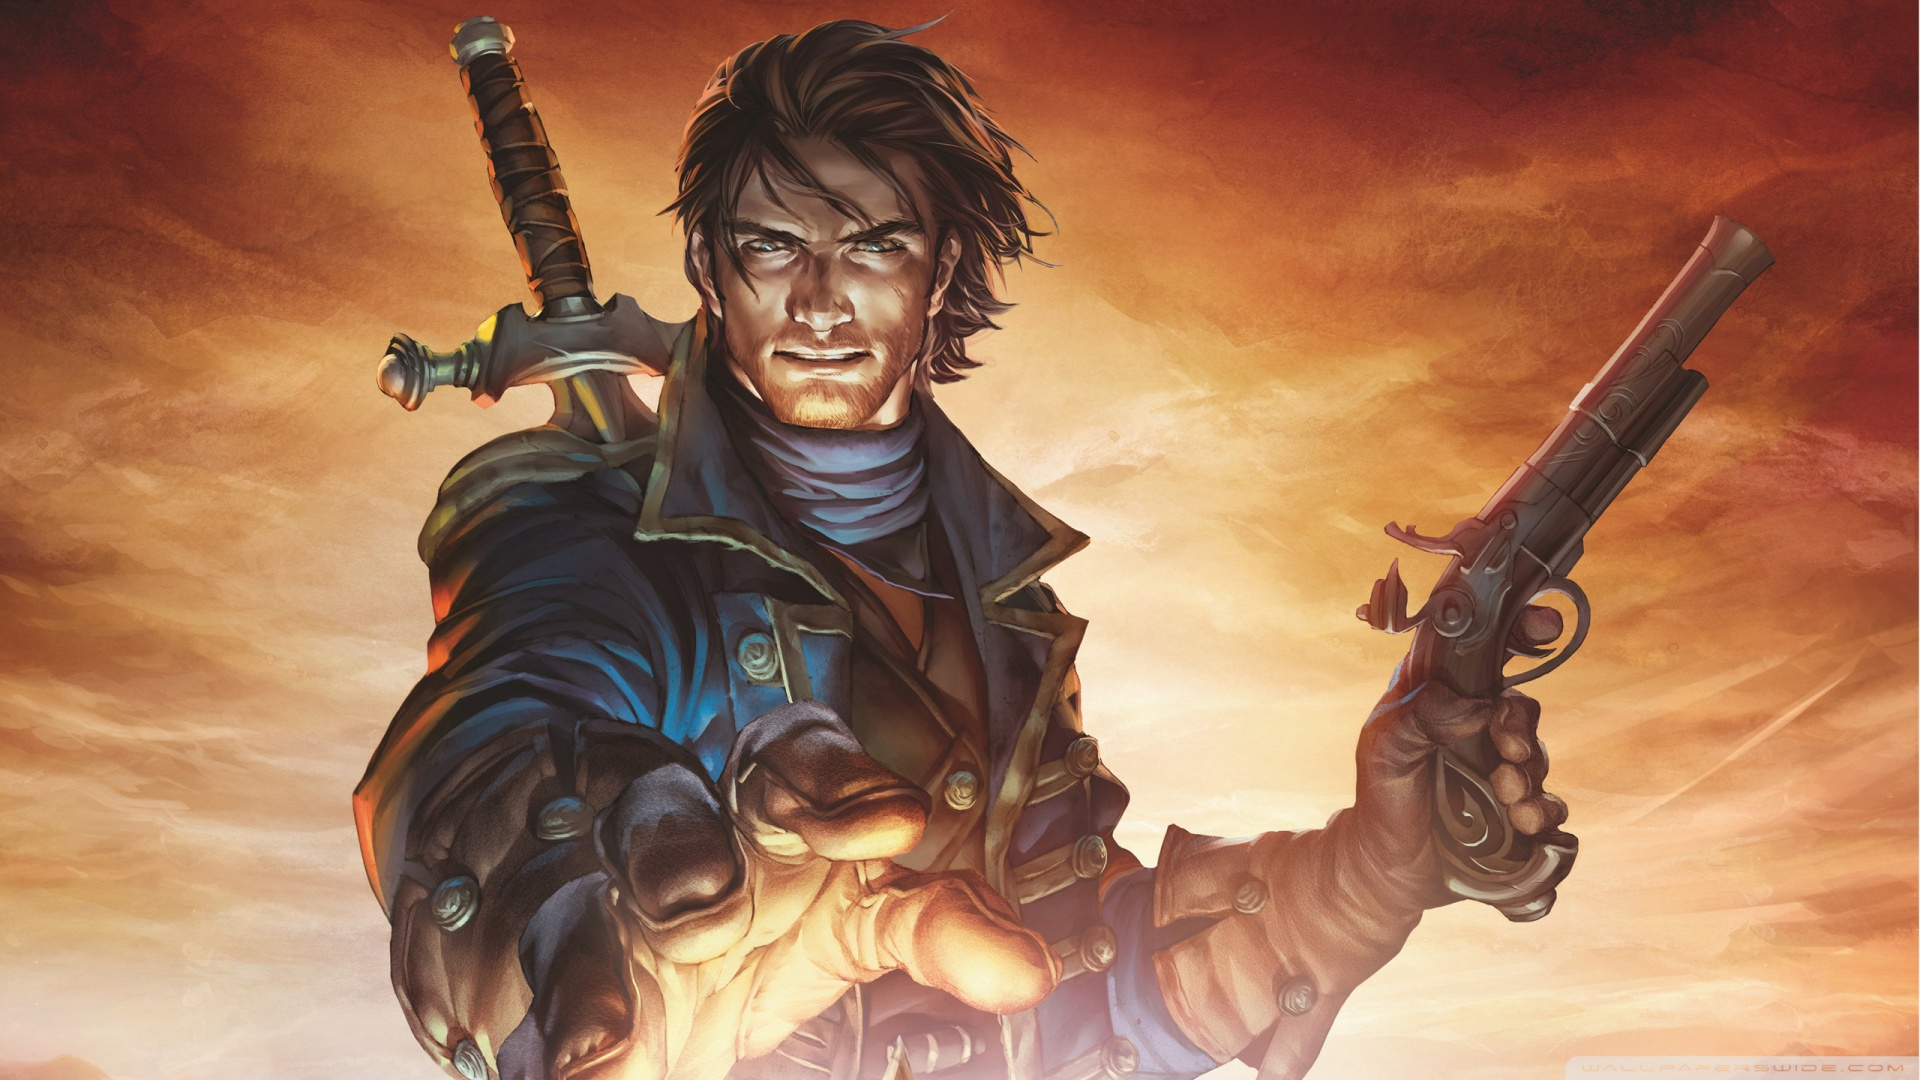 fable 3 wallpaper 15 20 Years Of Games: A Look Back At Lionhead Studios